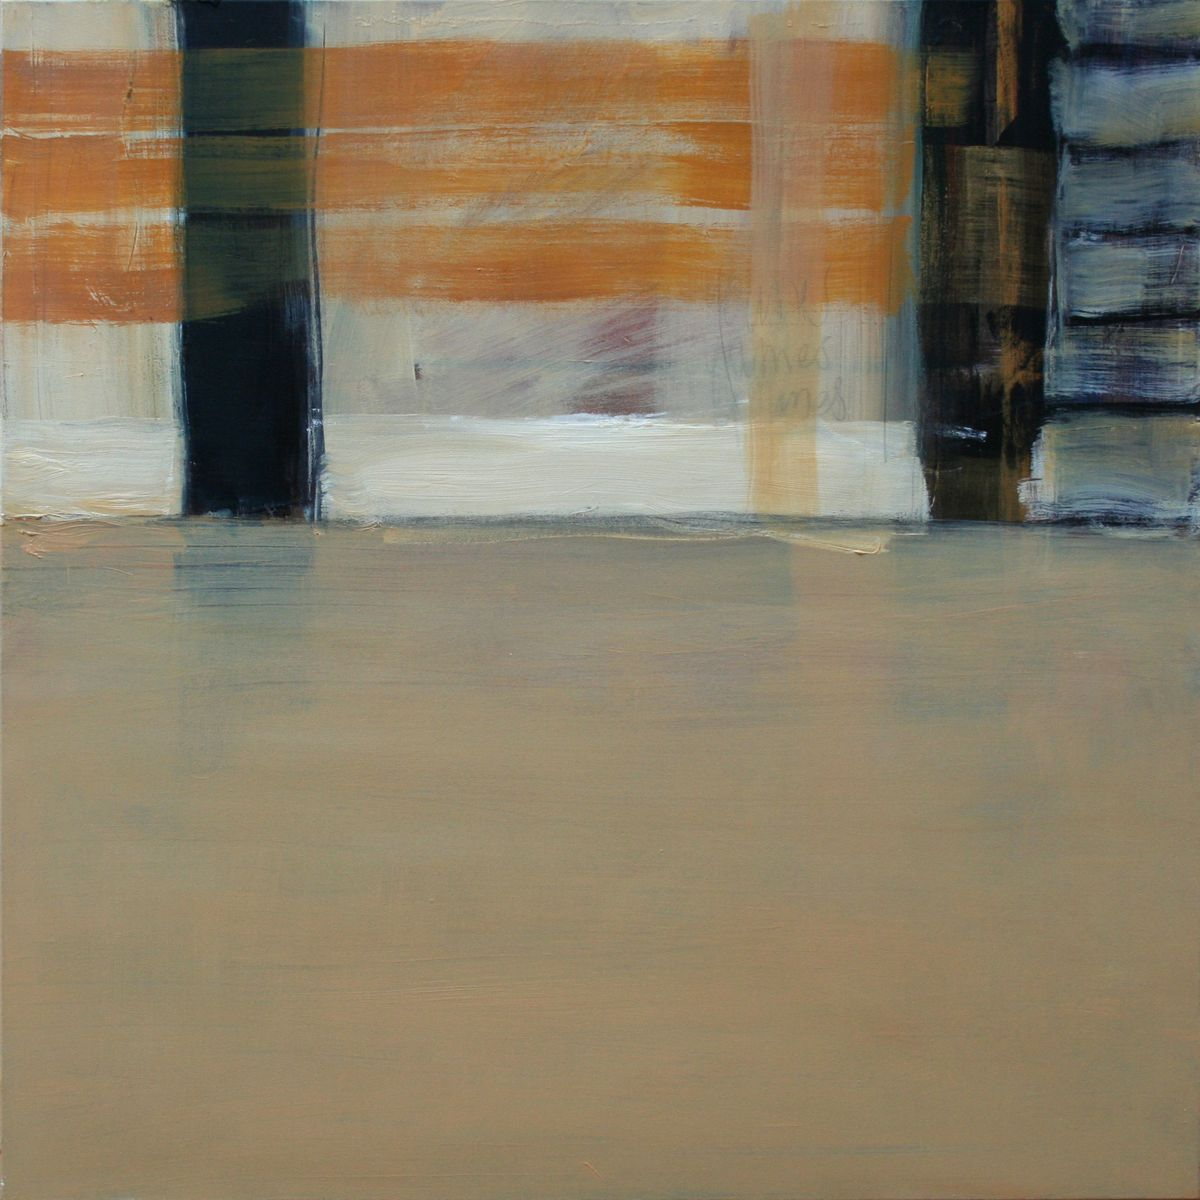 Passage 12 - 100x100cm - oil on canvas